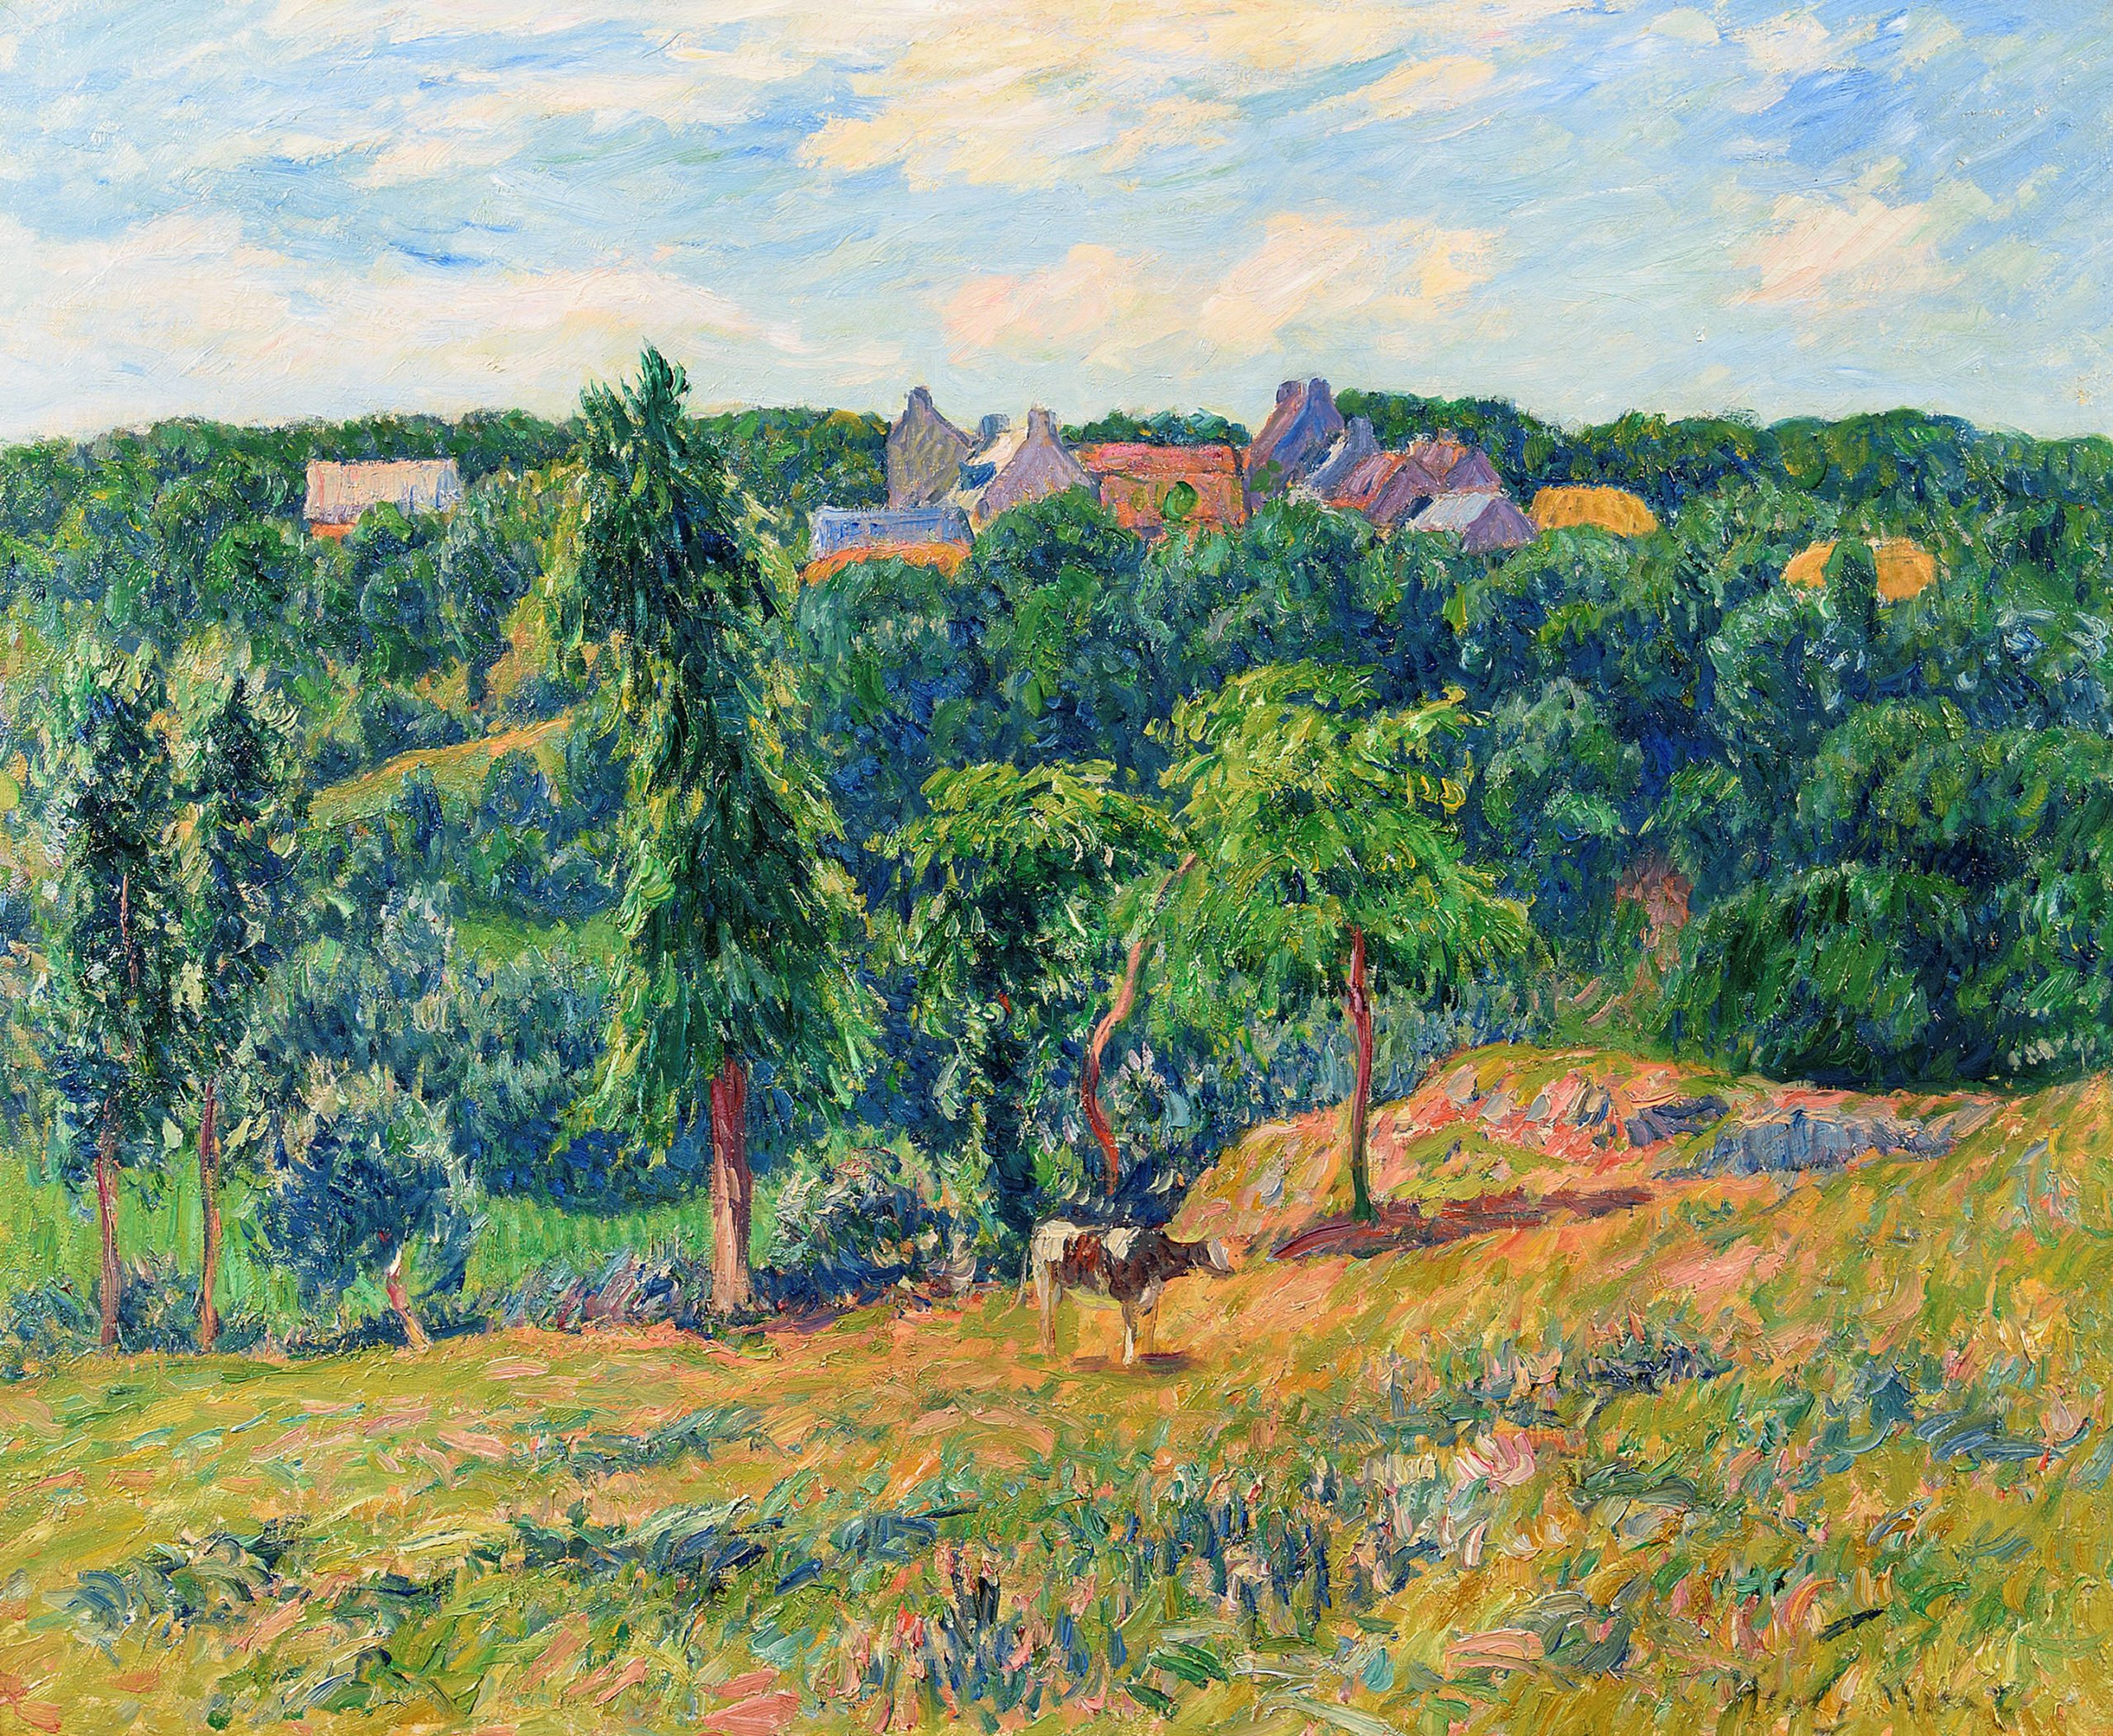 landscape painting of a forest with a village behind